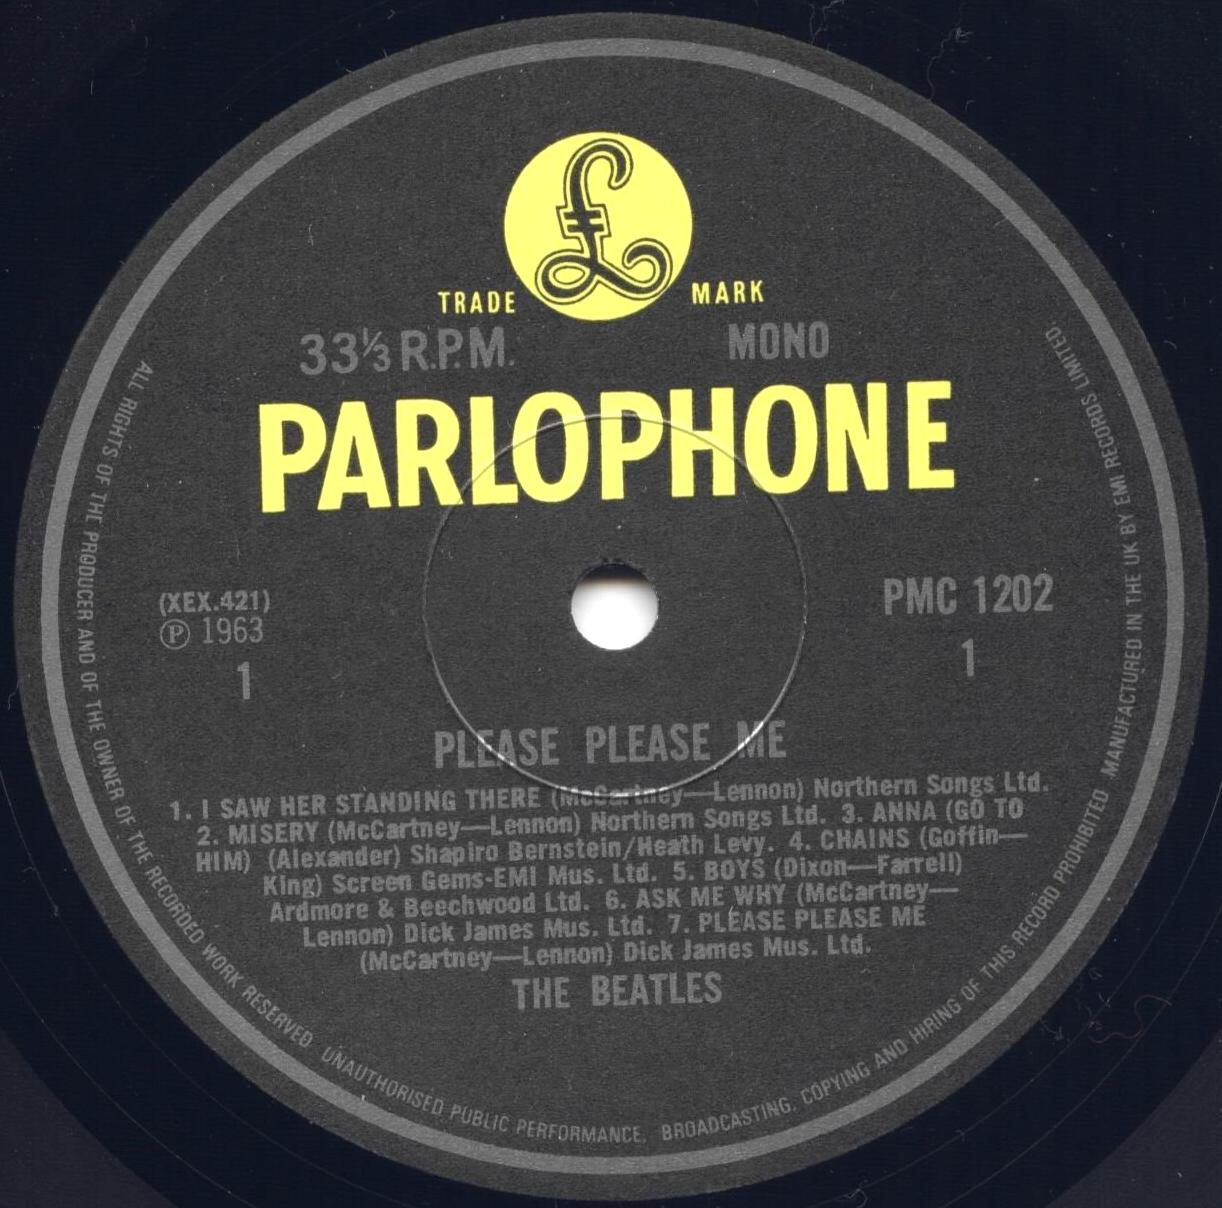 The Beatles Collection » 02  Beatles on Parlophone Records  Part 1